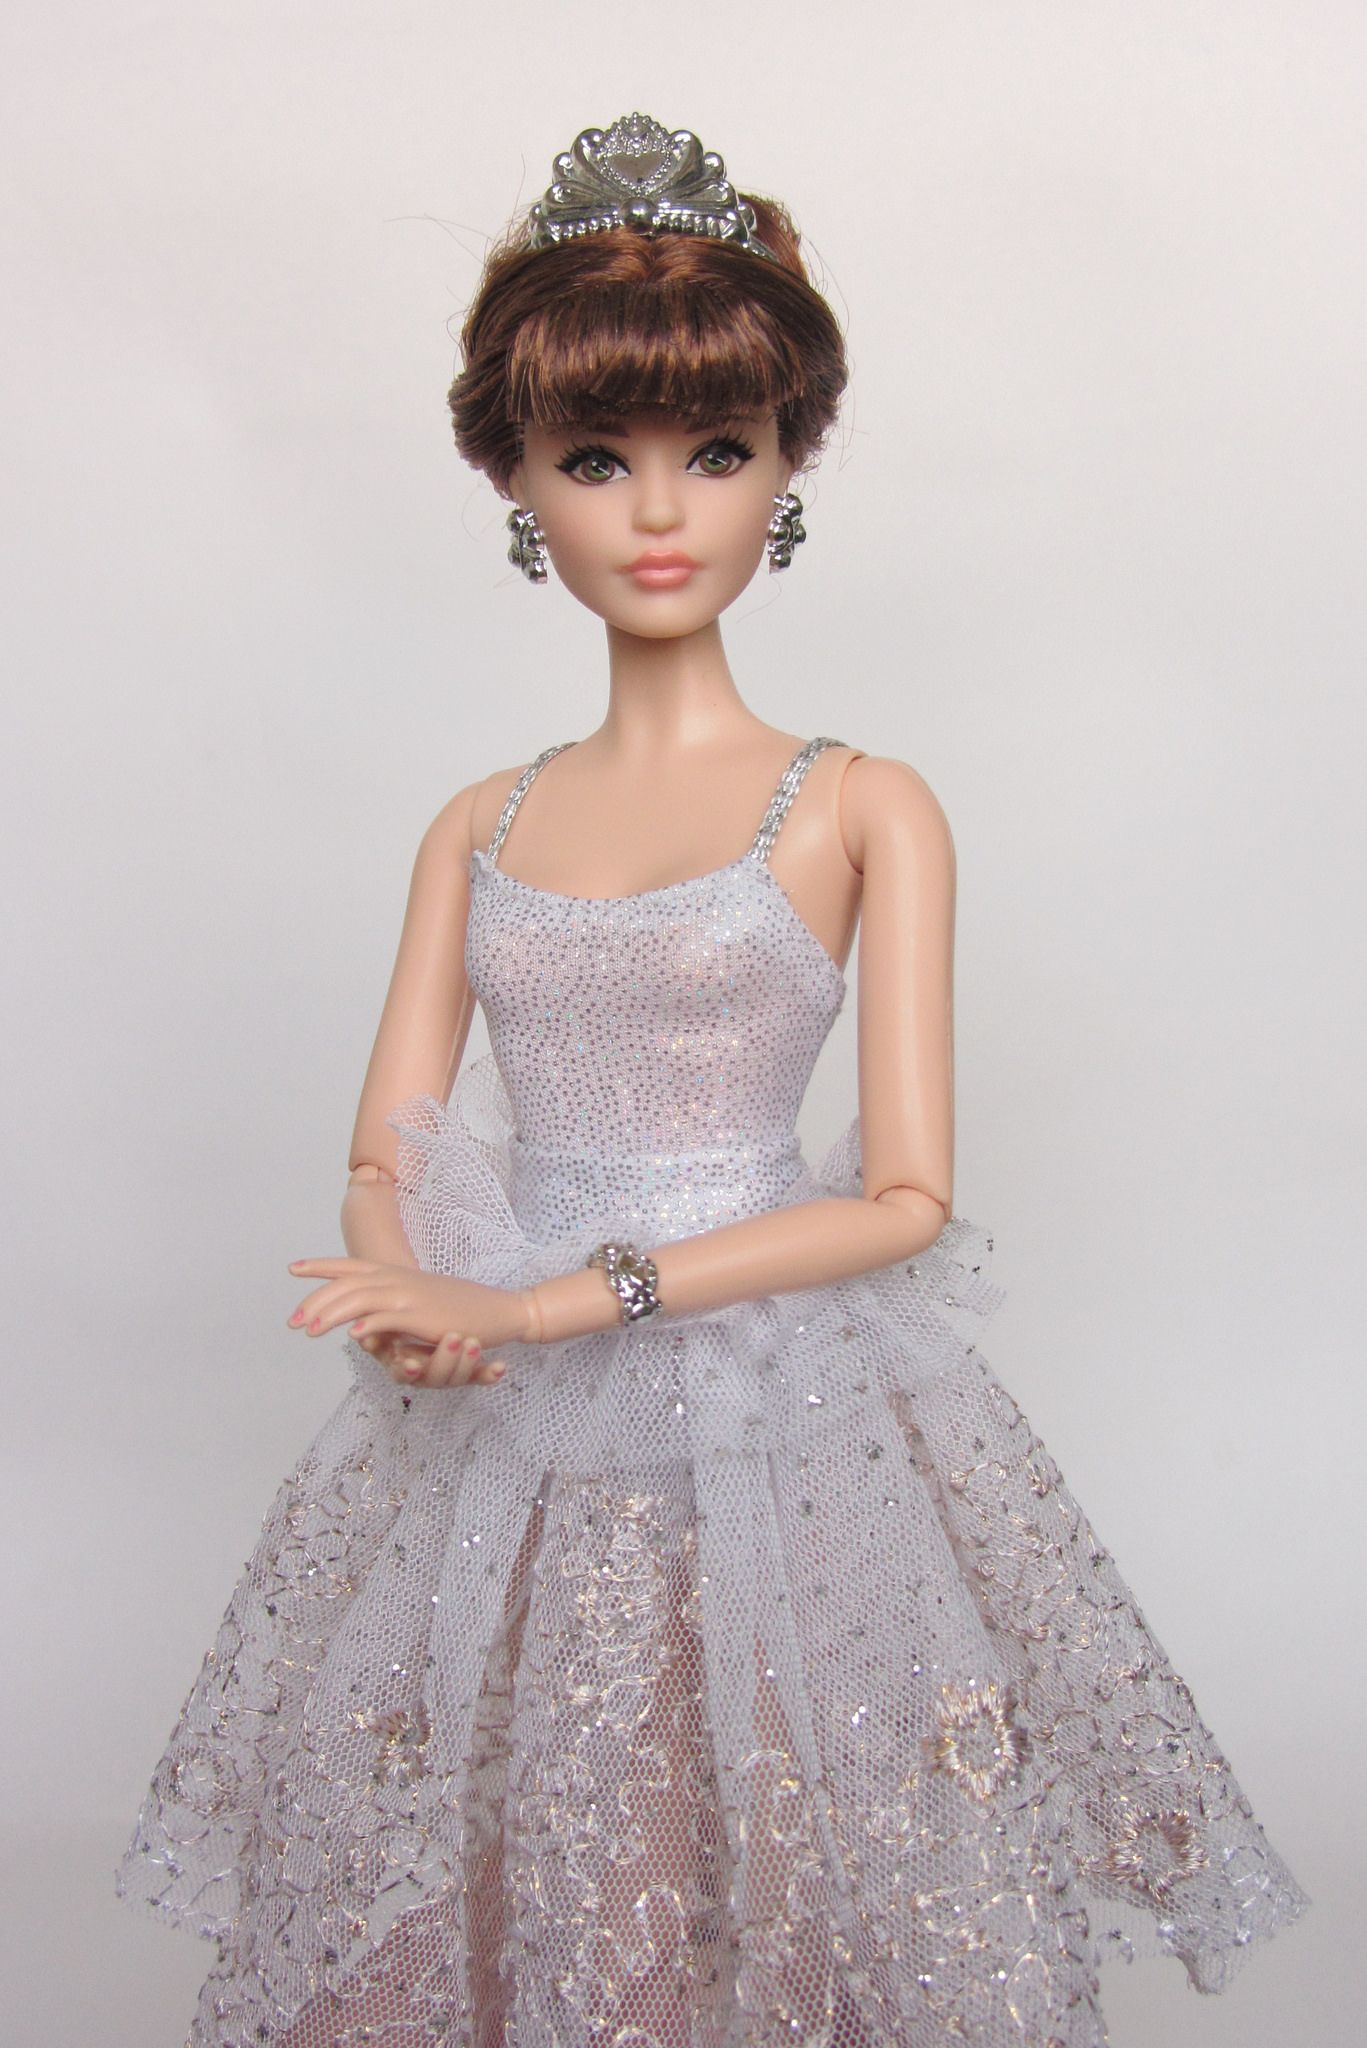 Handmade doll princess wedding dress for  1//6 doll party gown clothes HU